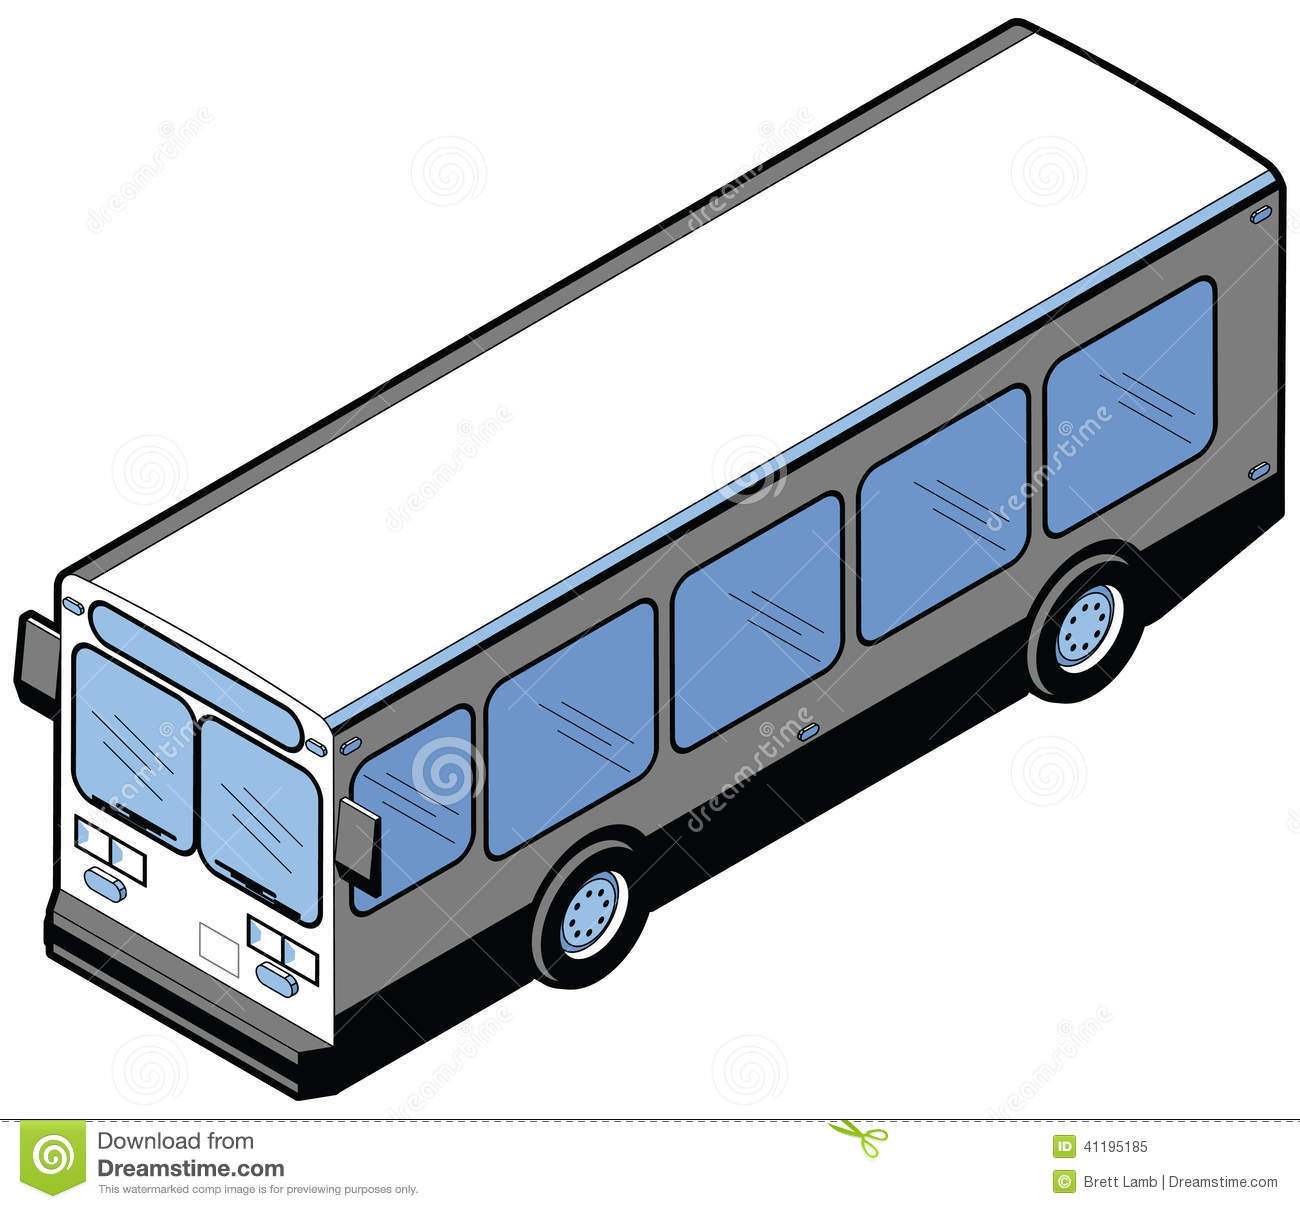 isometric bus diagram passenger 41195185 isometric bus stock illustration image of window, transit 41195185 bus diagram at aneh.co